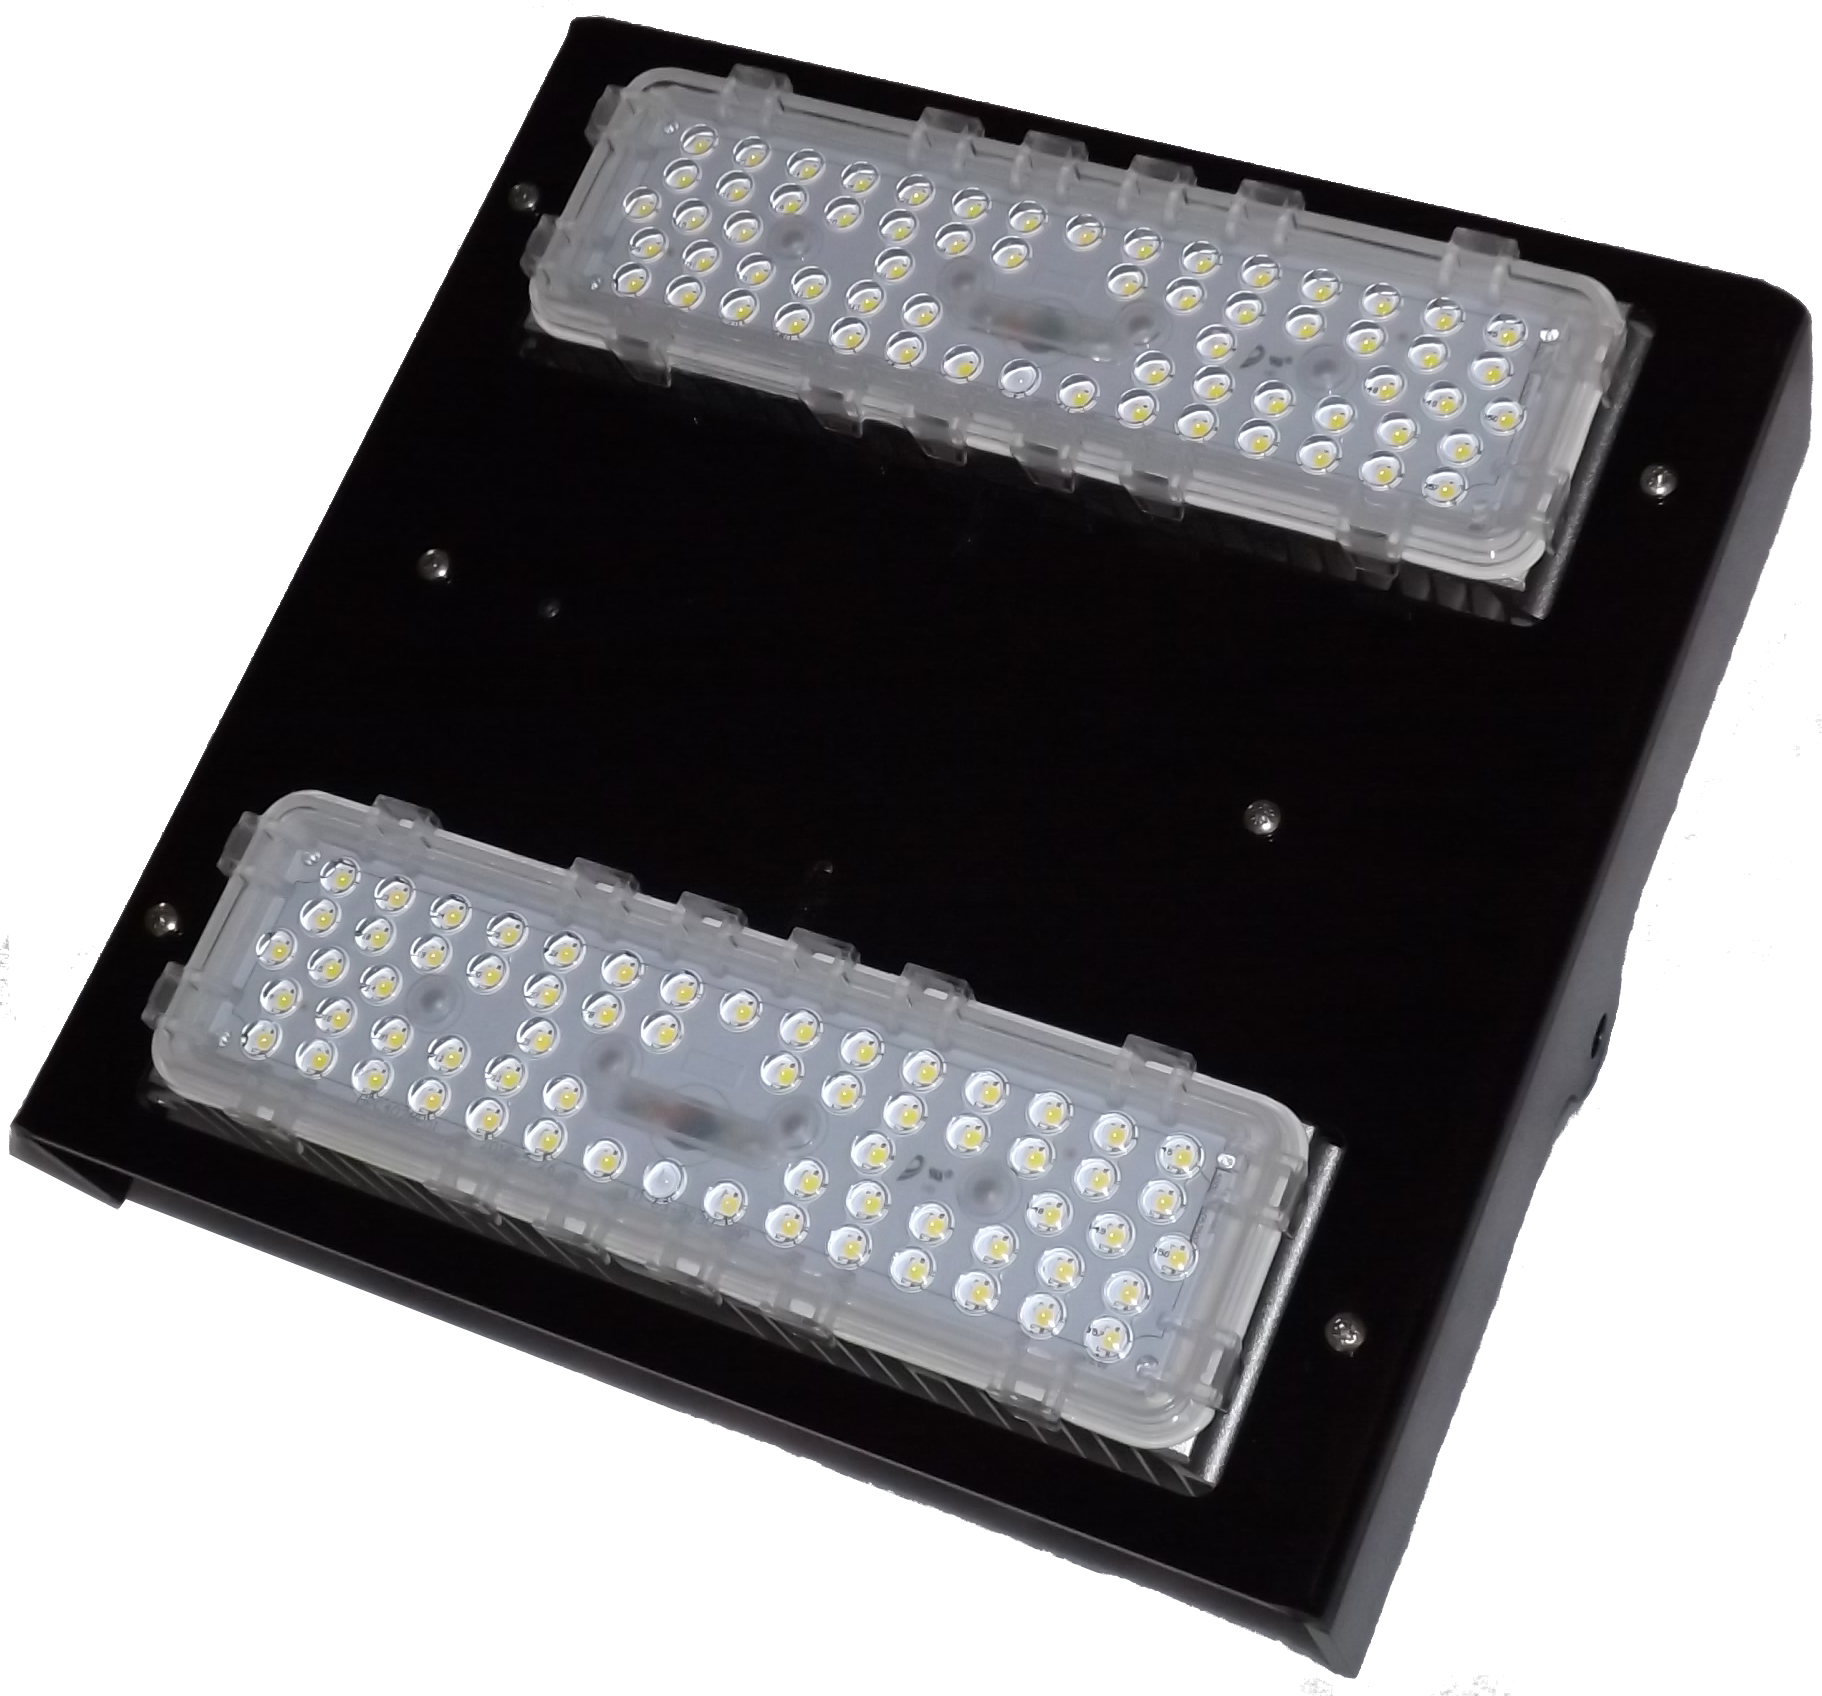 Emergency lighting projects